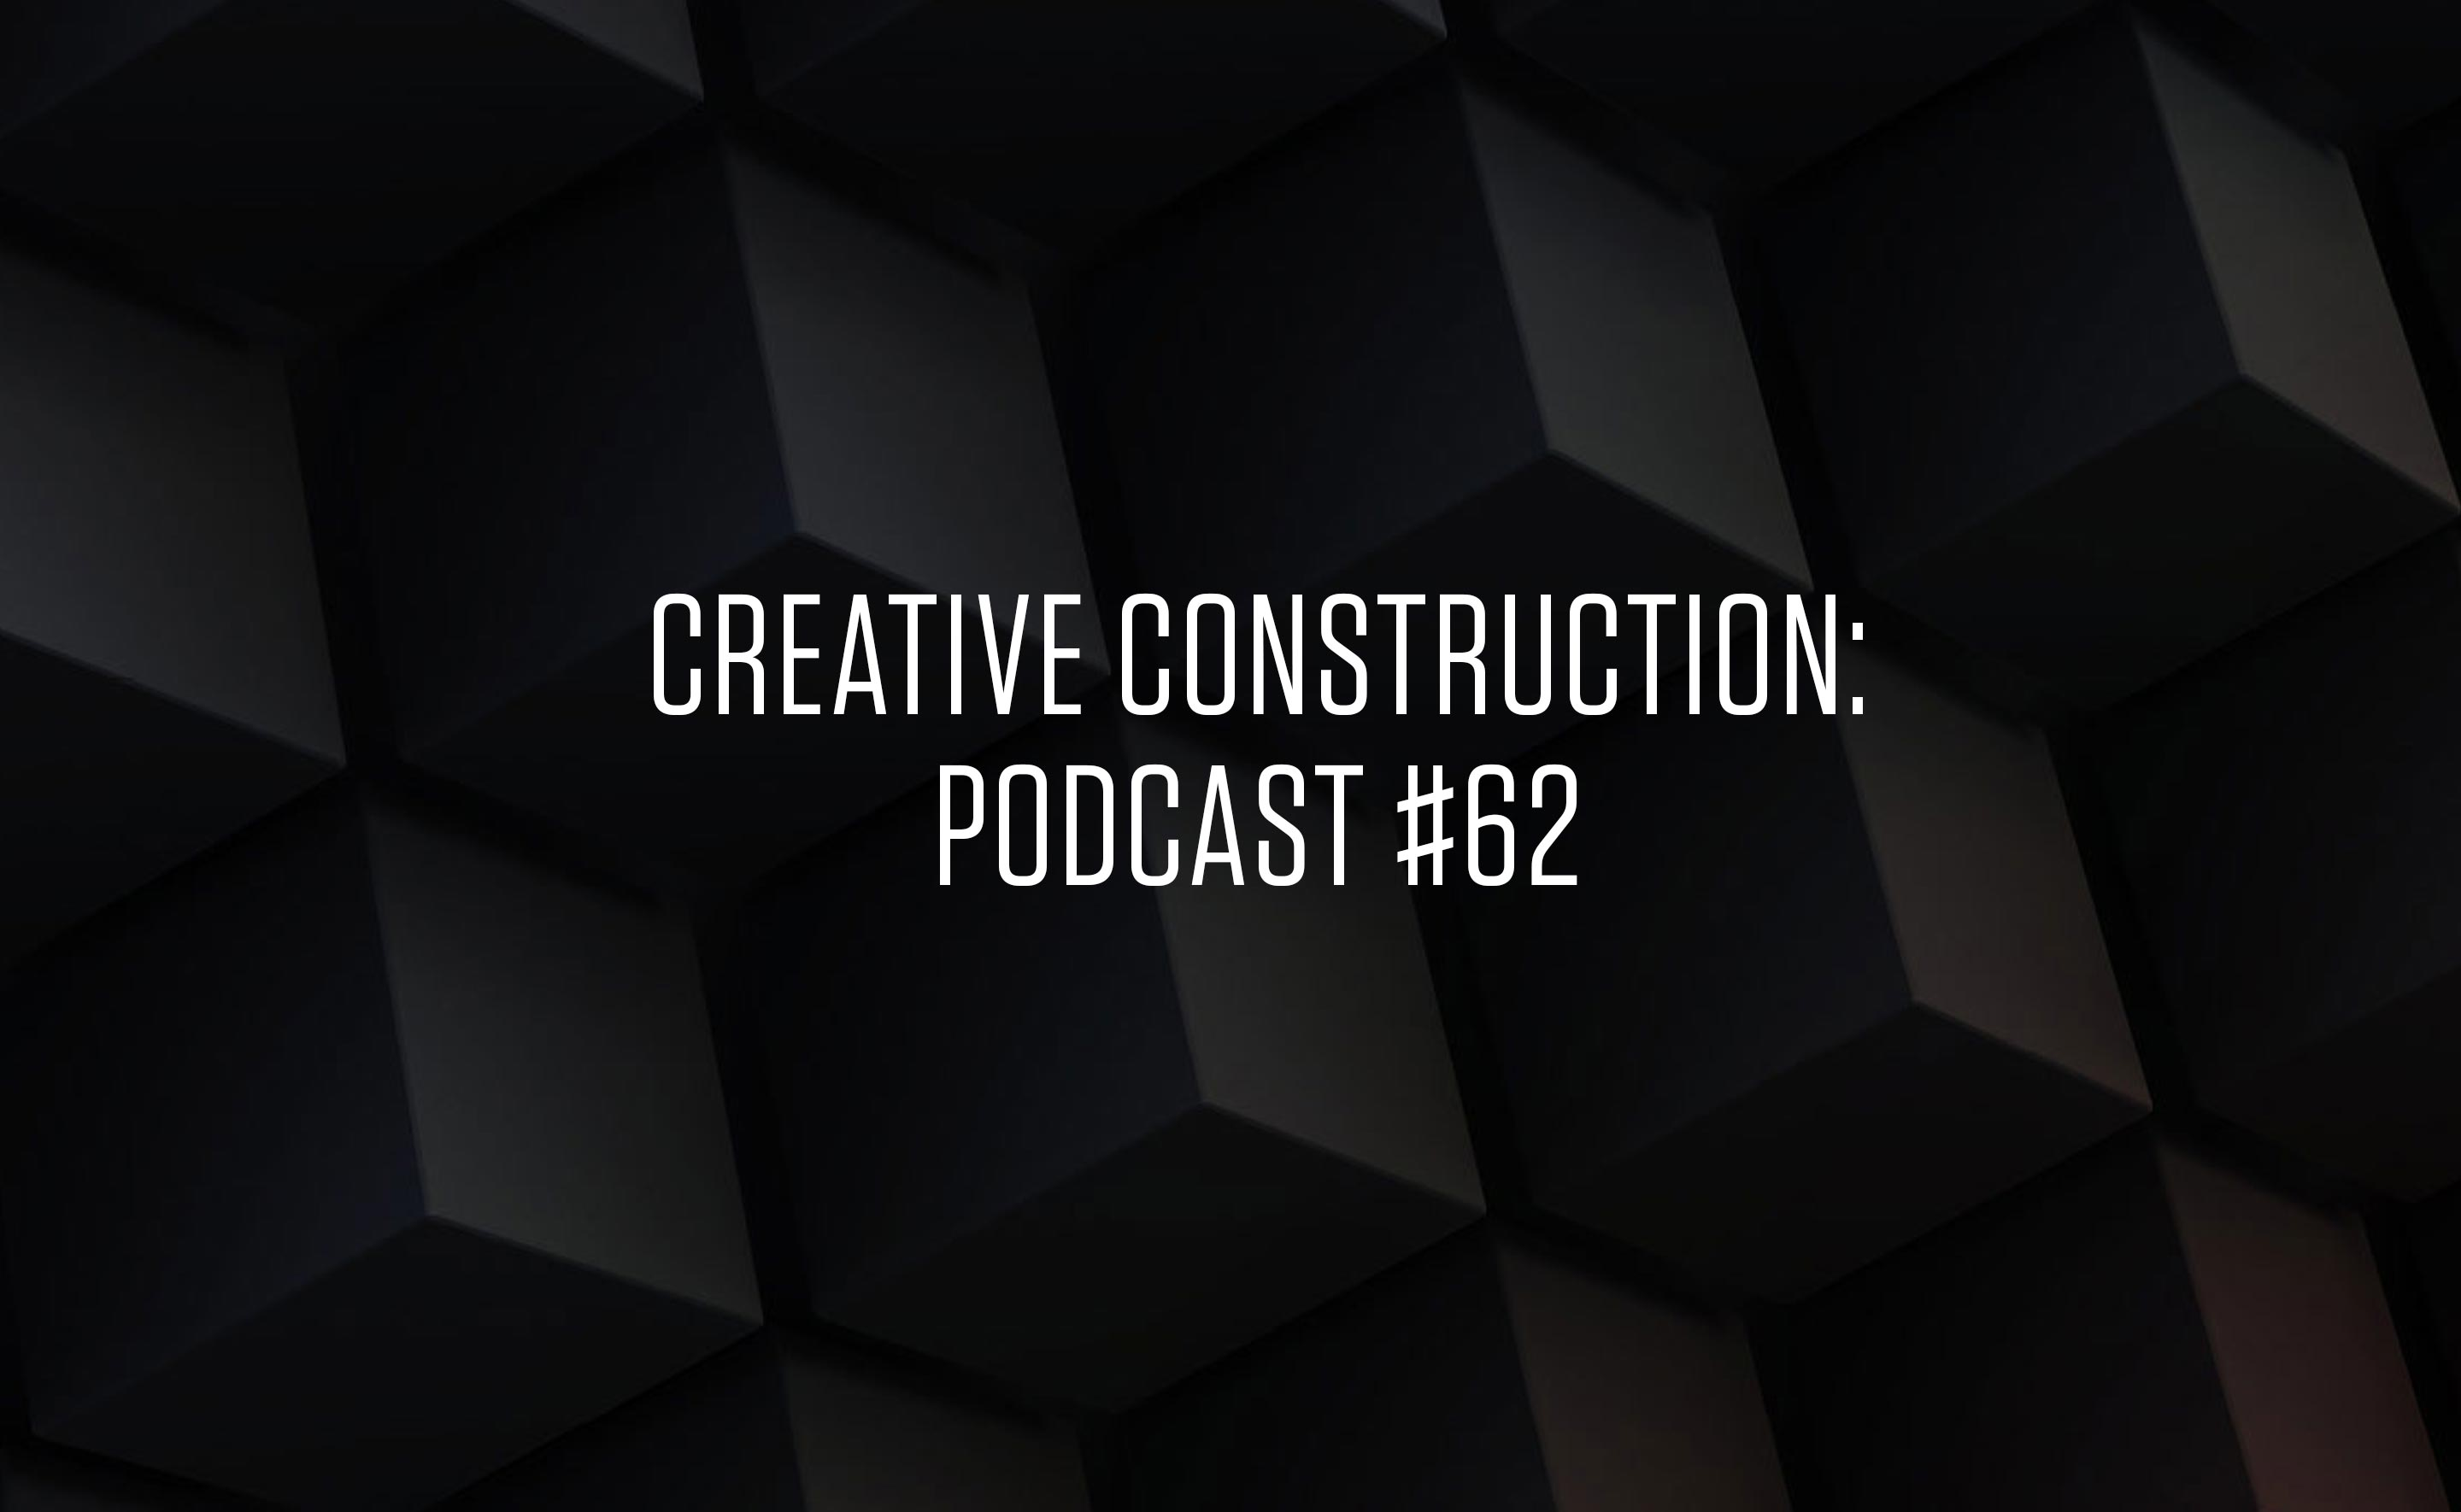 Creative Construction: Podcast #62